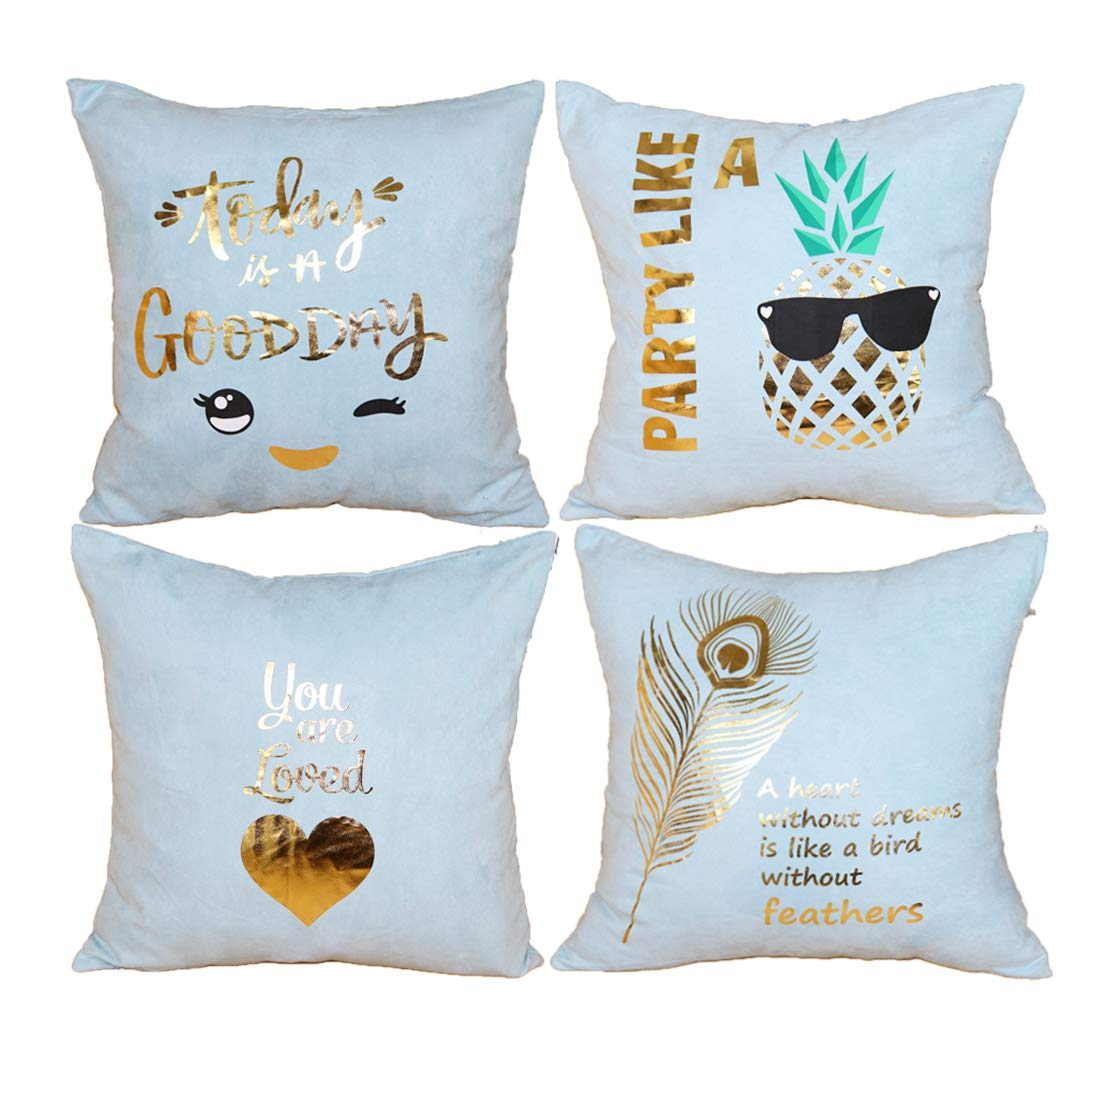 Original Pro Pack of 4 Gold Stamping Decorative Suede Fabric Throw Pillow Cover Soft Soild Square Cushion Case for Sofa Bedroom Car 18x 18 Inch Teal